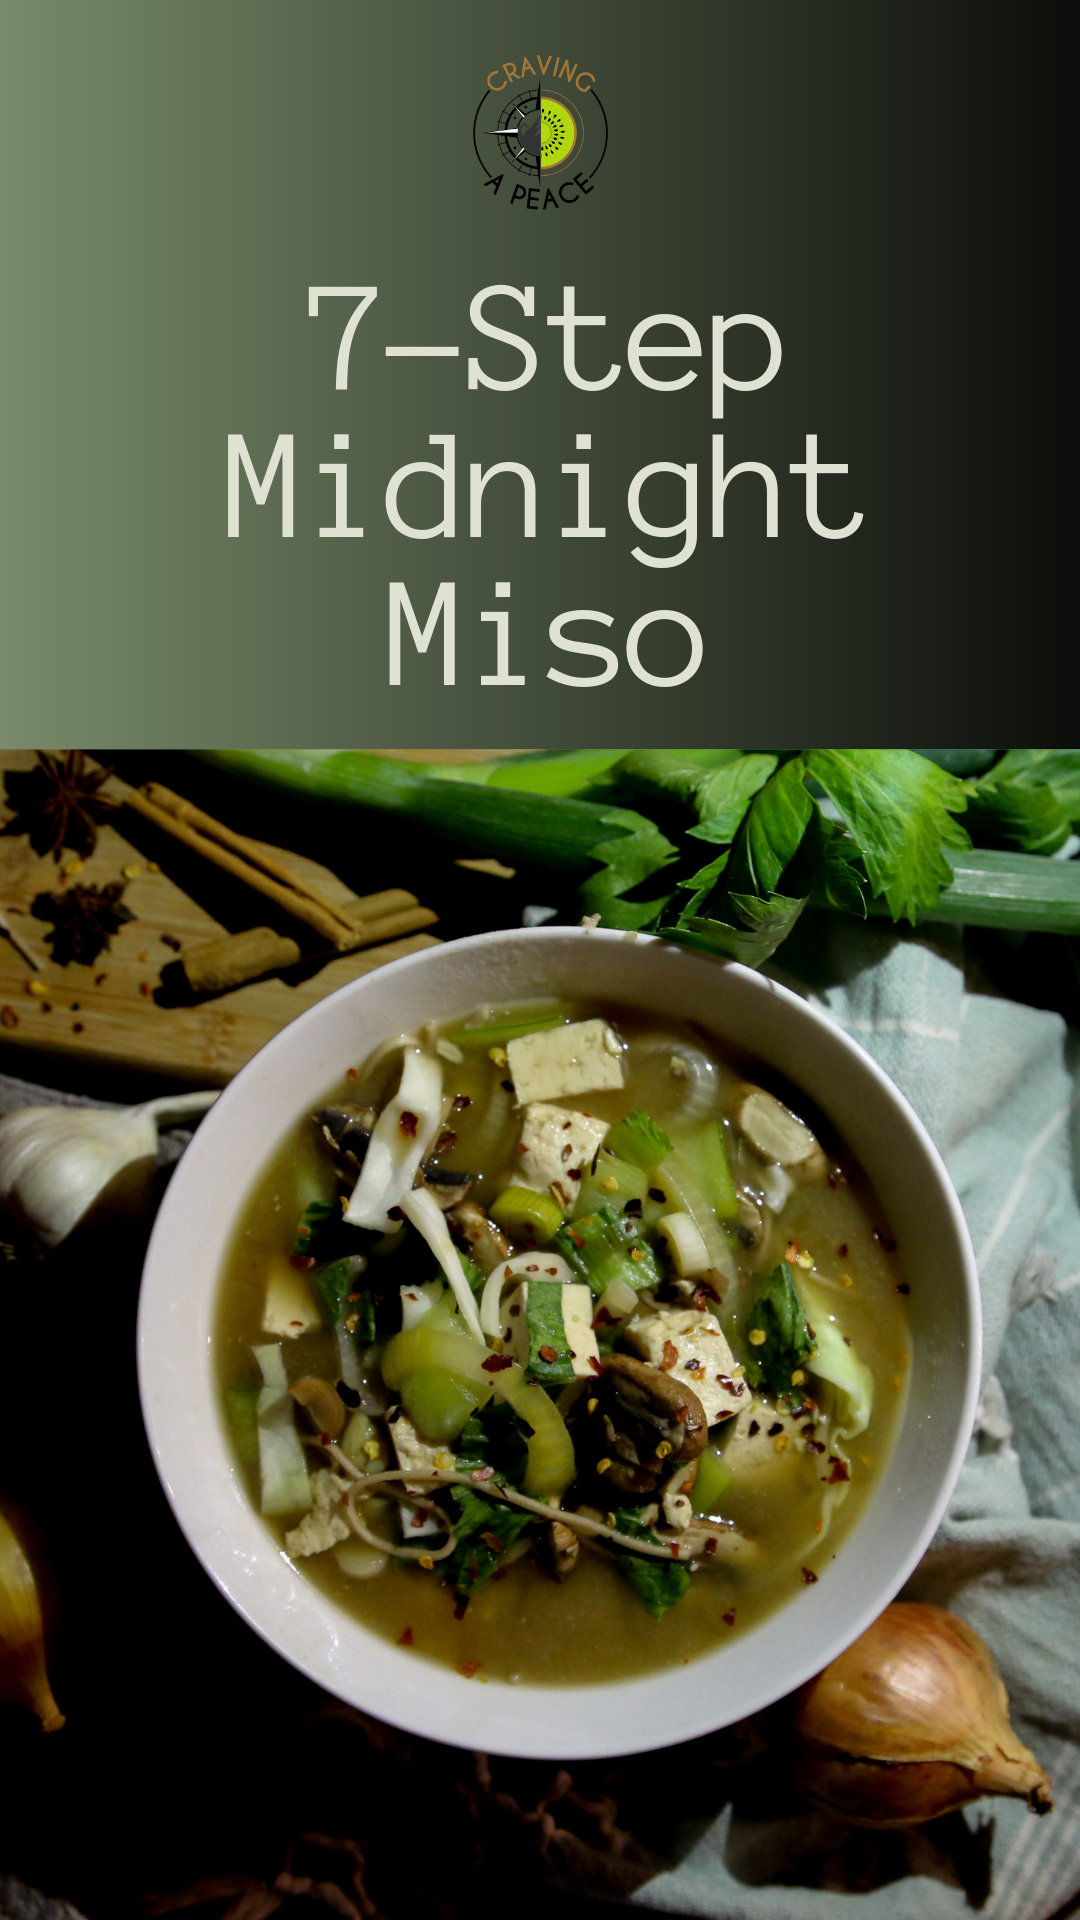 7-Step Midnight Miso.png